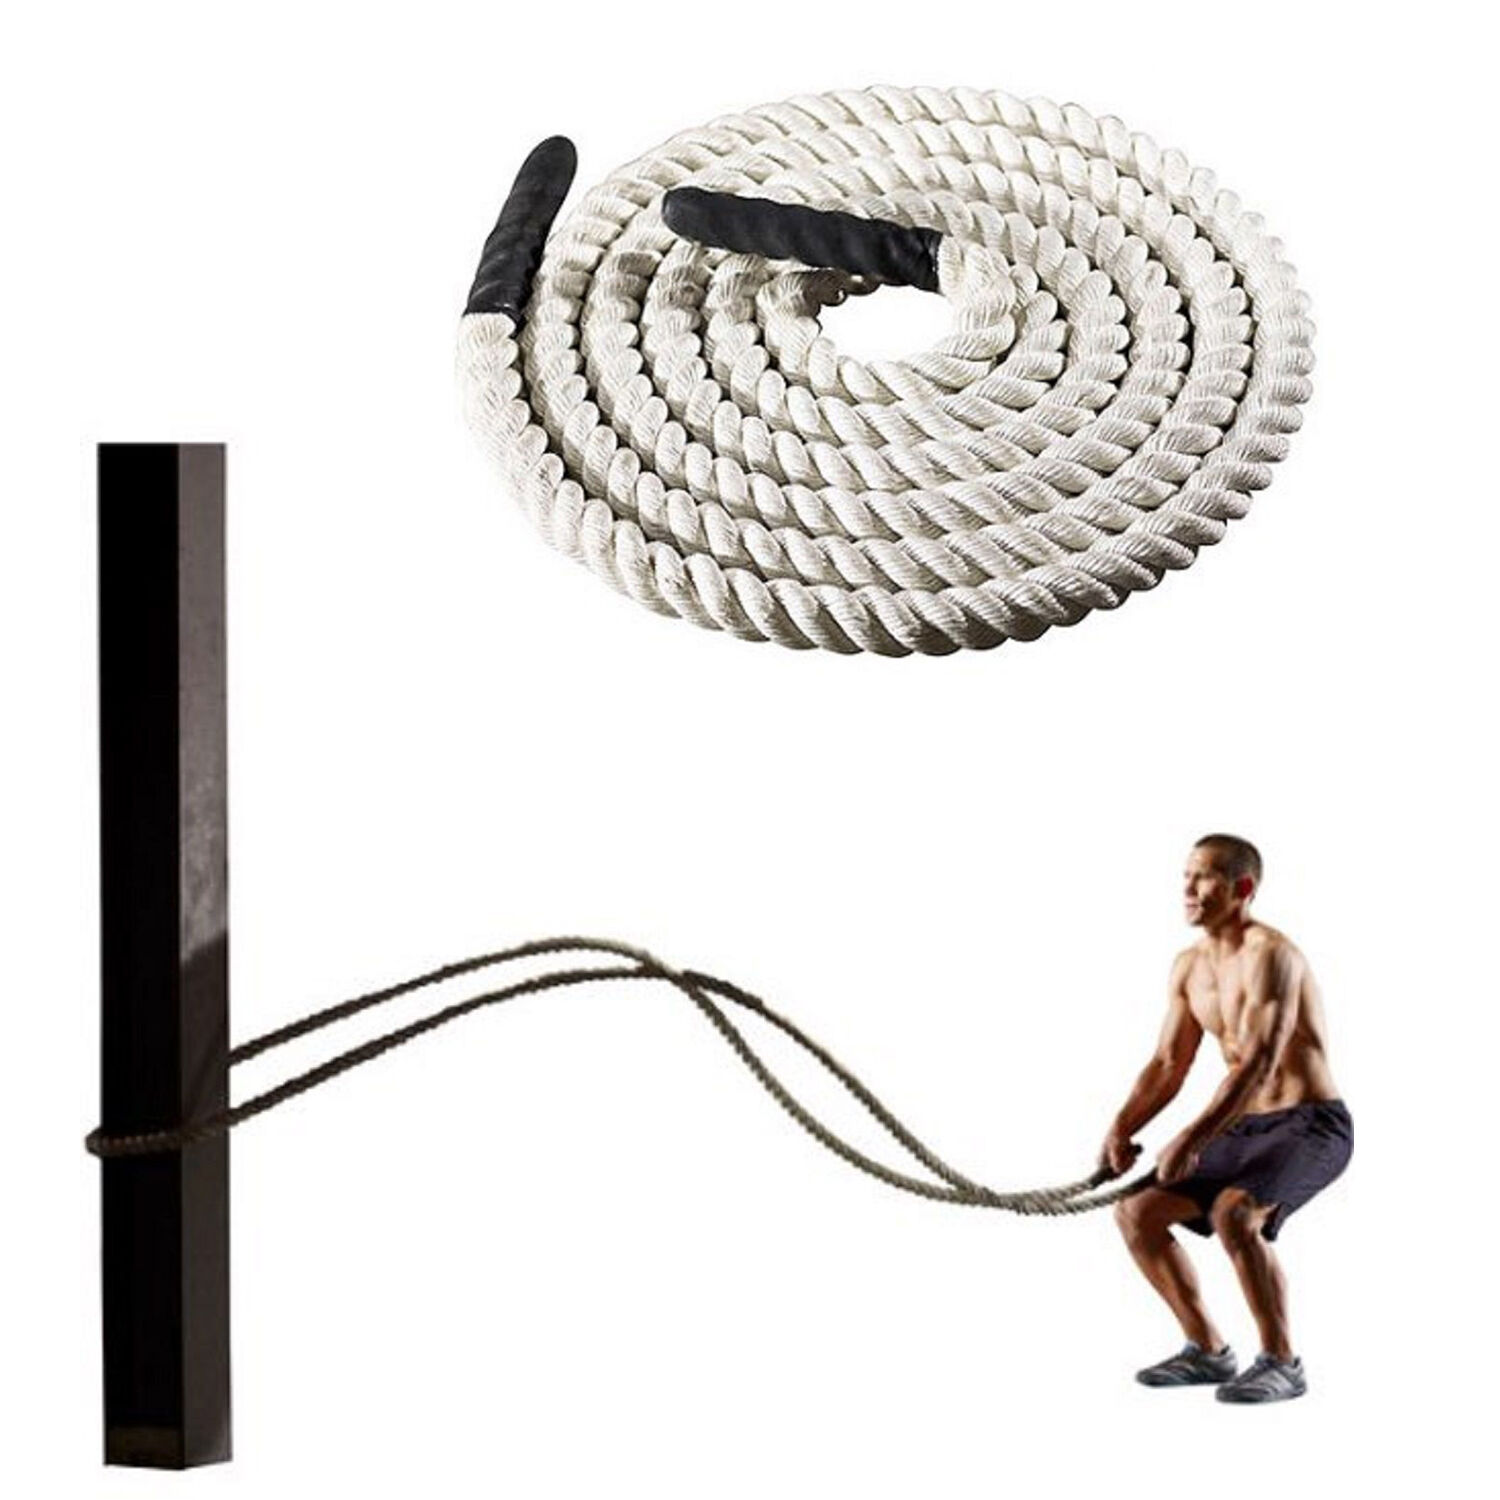 Training  Rope Extreme 20' Fitness Workout Exercise Gym Equipment New  incentive promotionals